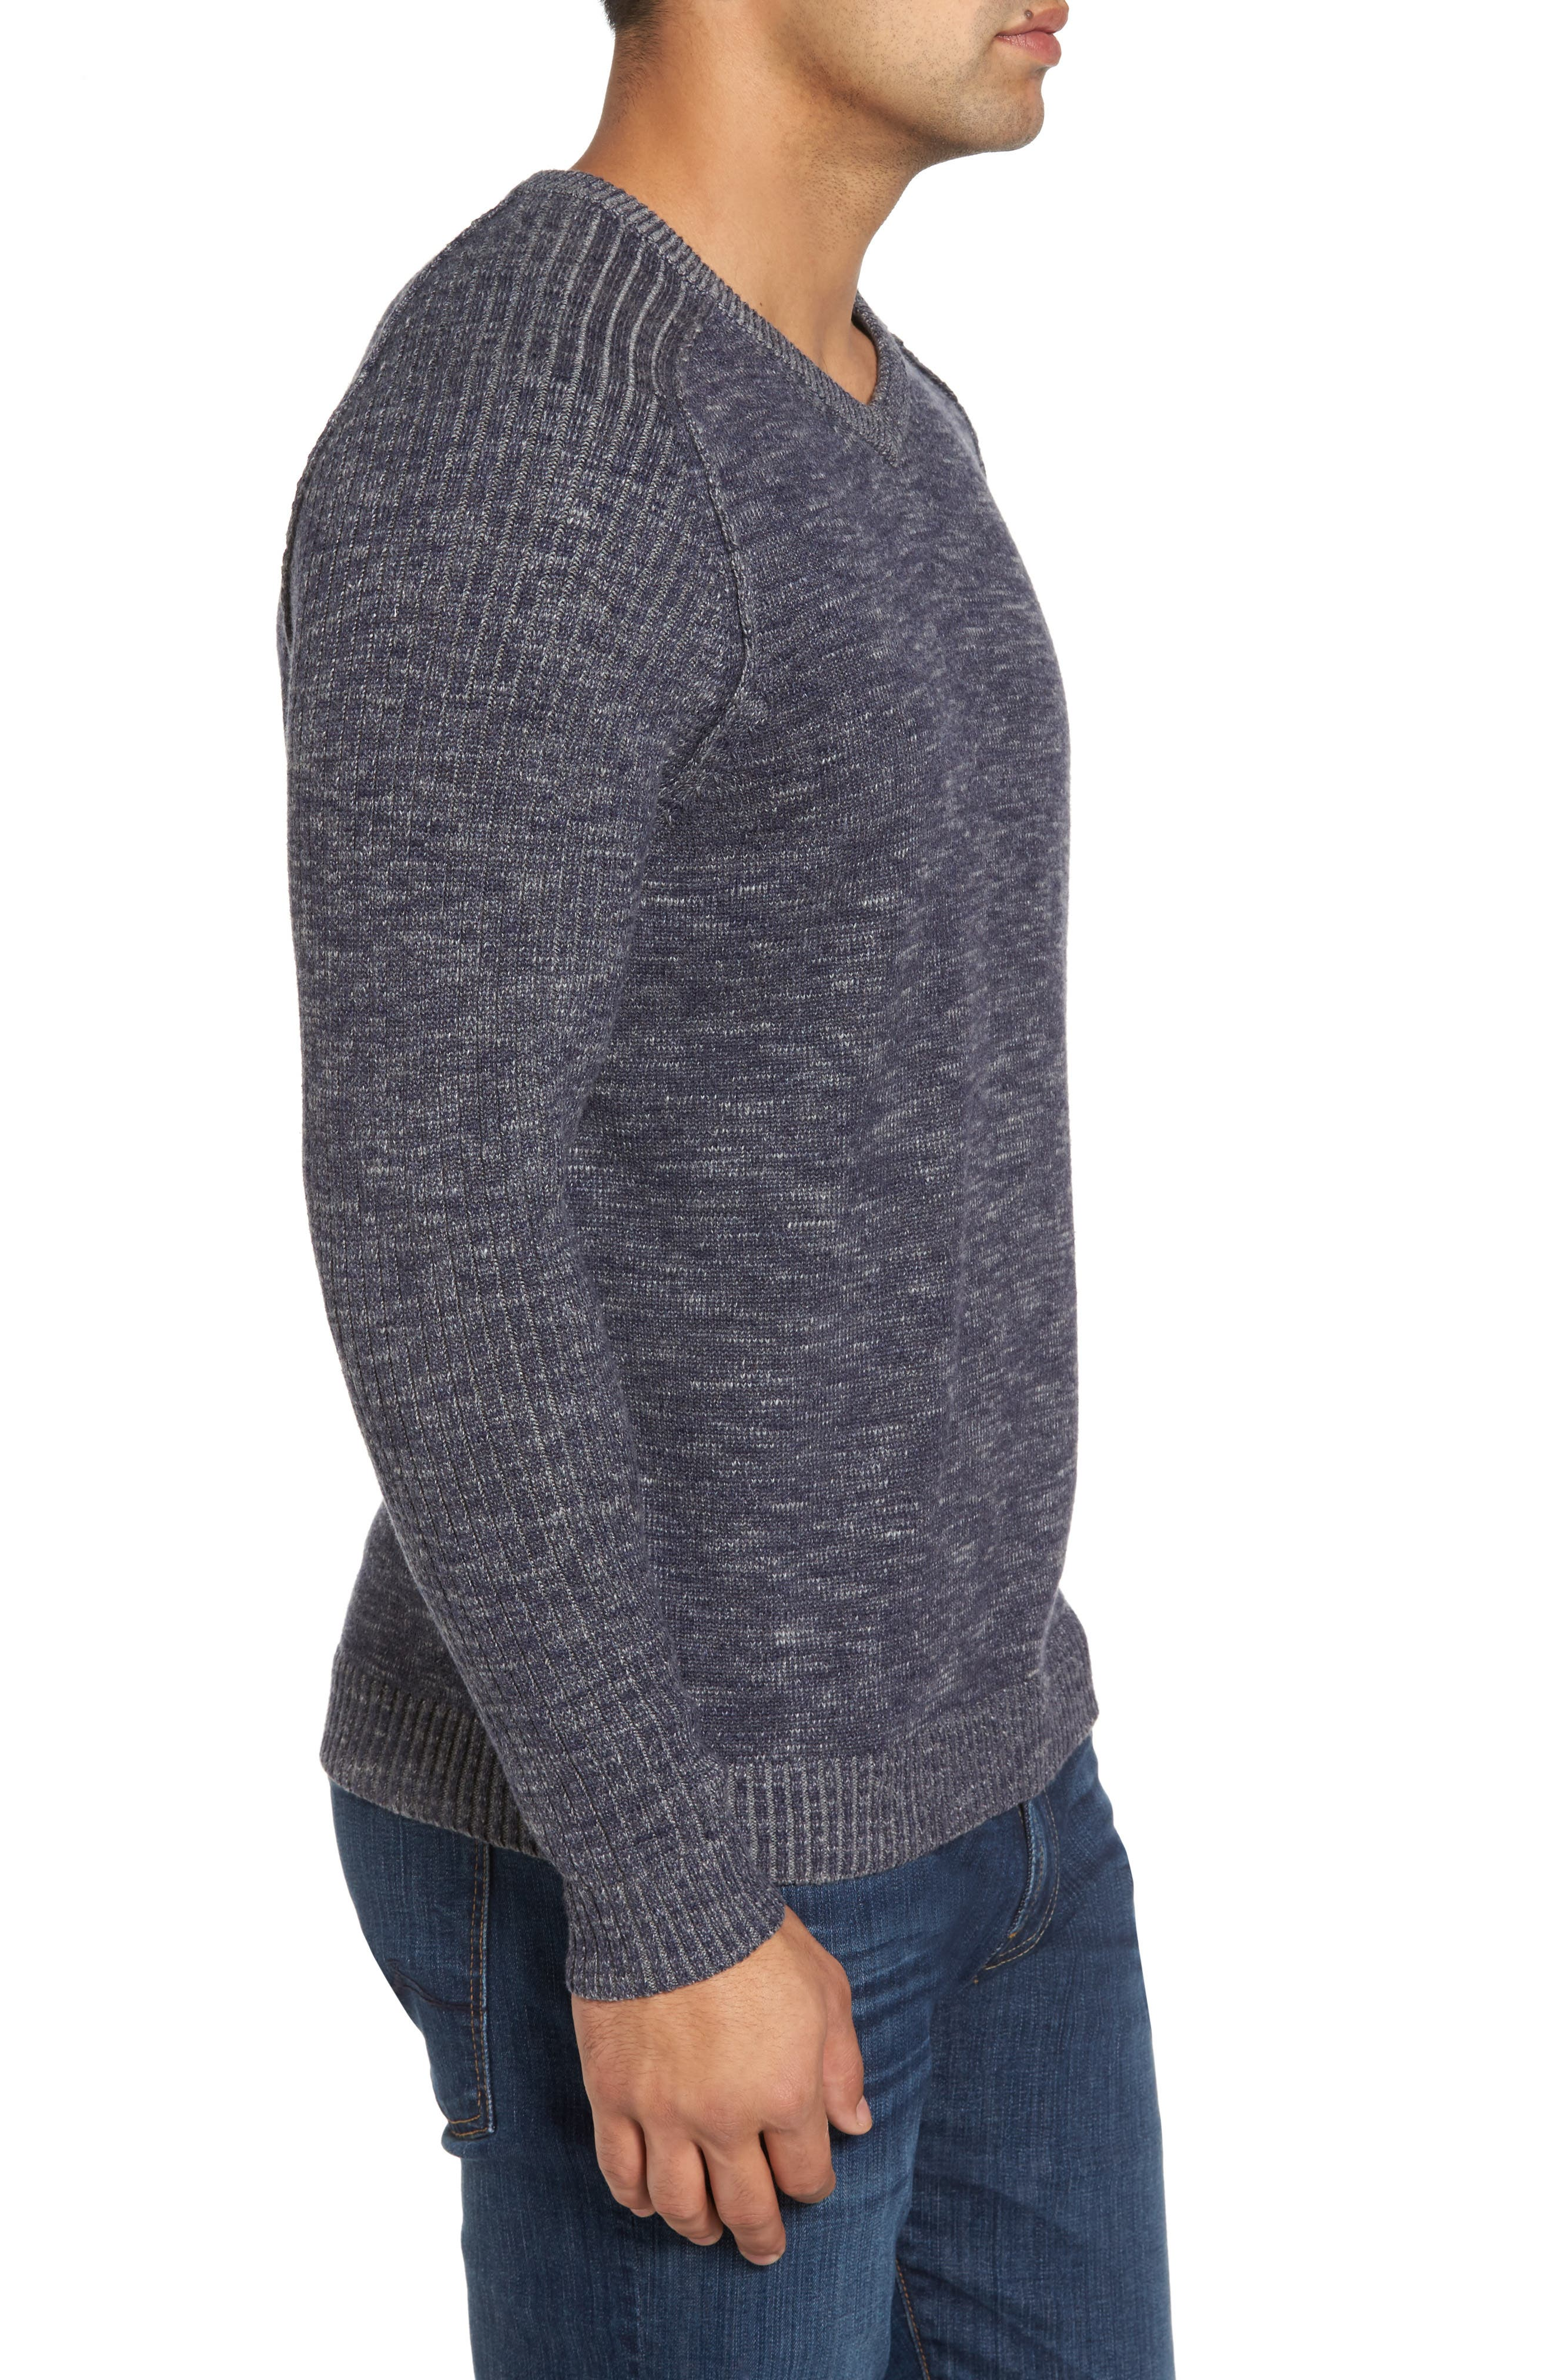 Gran Rey Flip Reversible Cotton & Wool Sweater,                             Alternate thumbnail 5, color,